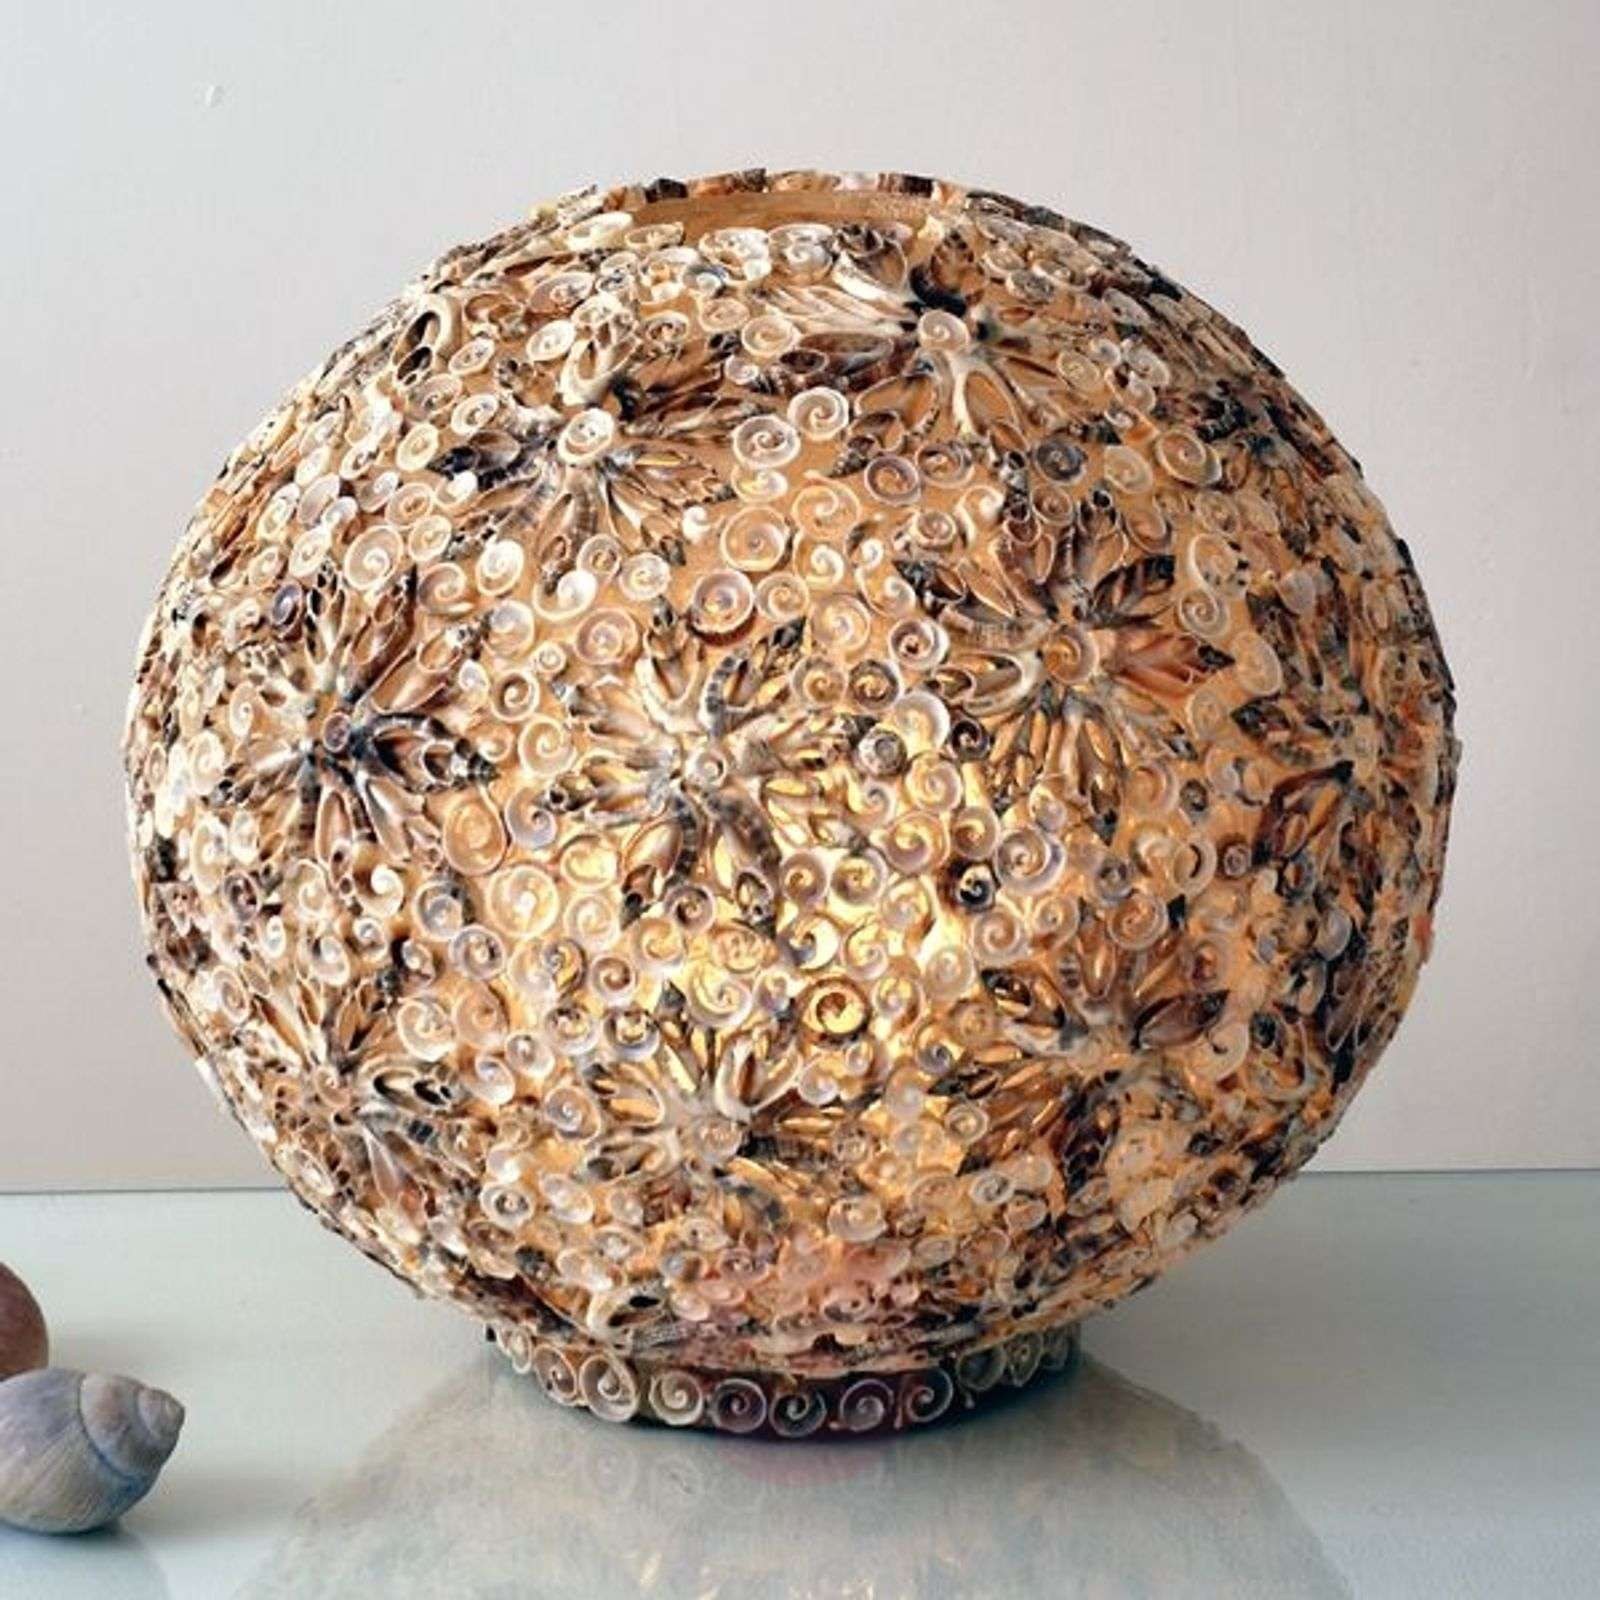 Decorative table lamp MUSCHELBALL-4512185X-01